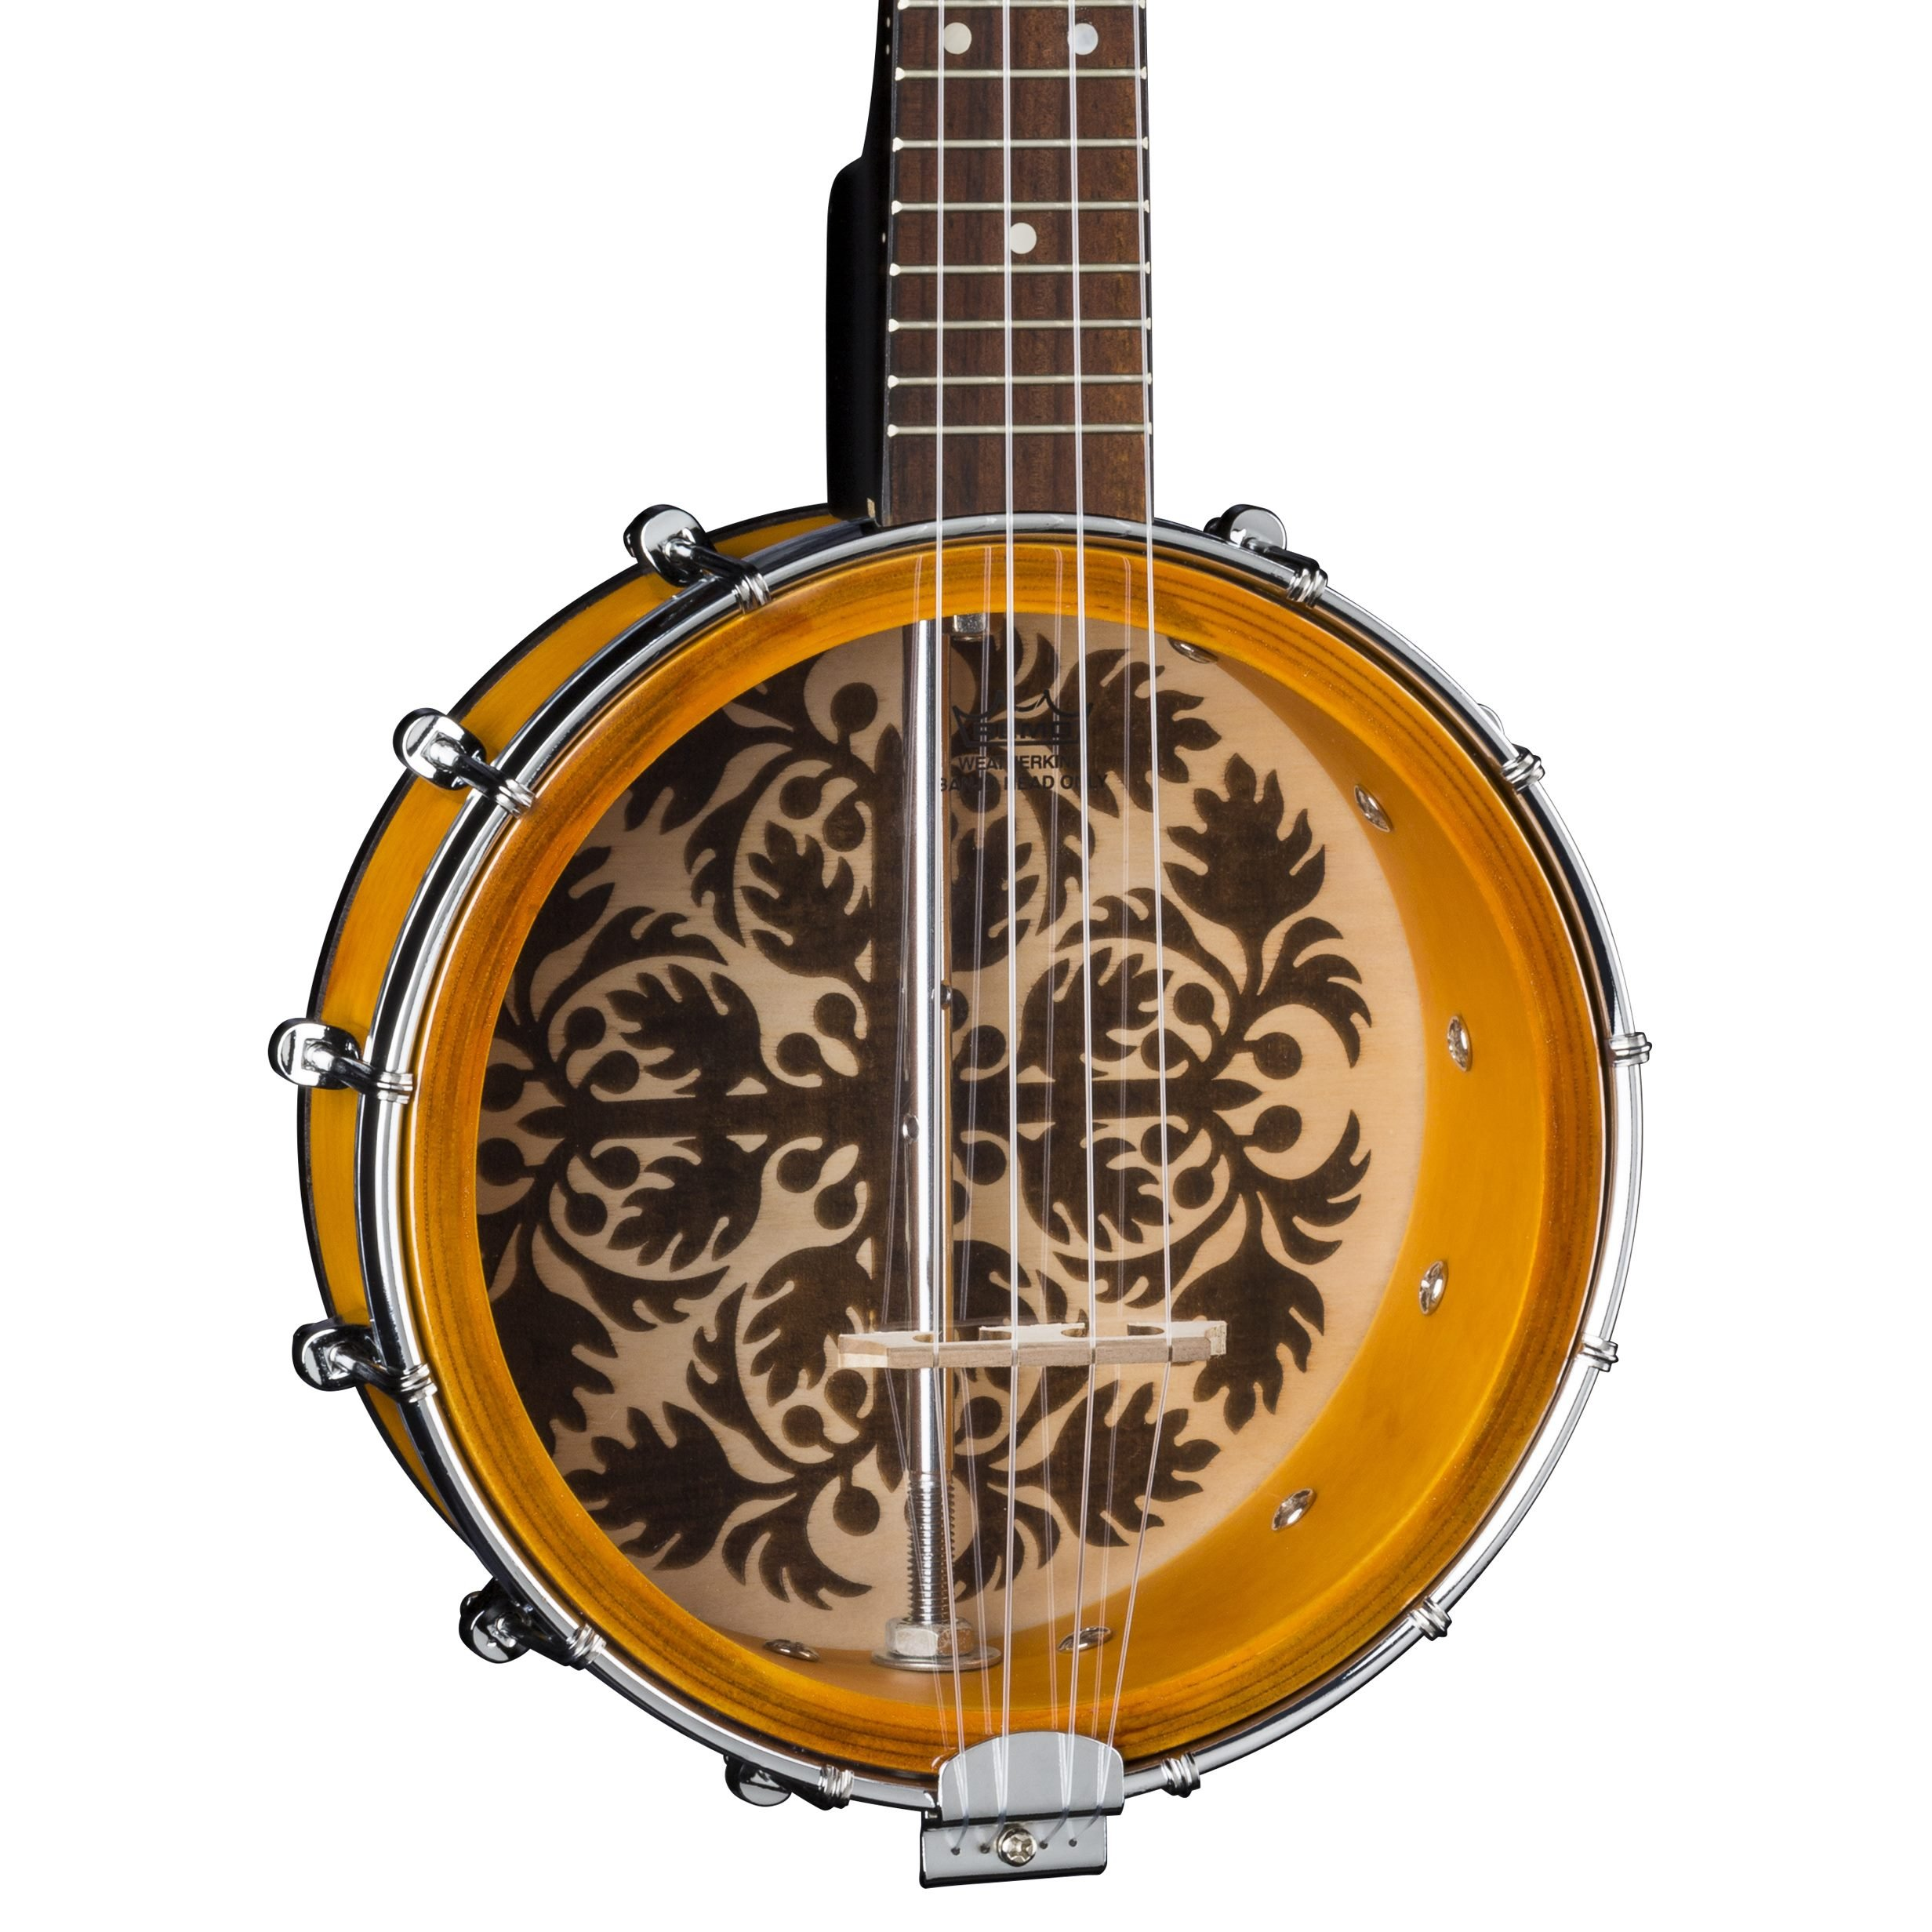 Luna 8'' Banjolele with Ulu Design, Tobacco Burst